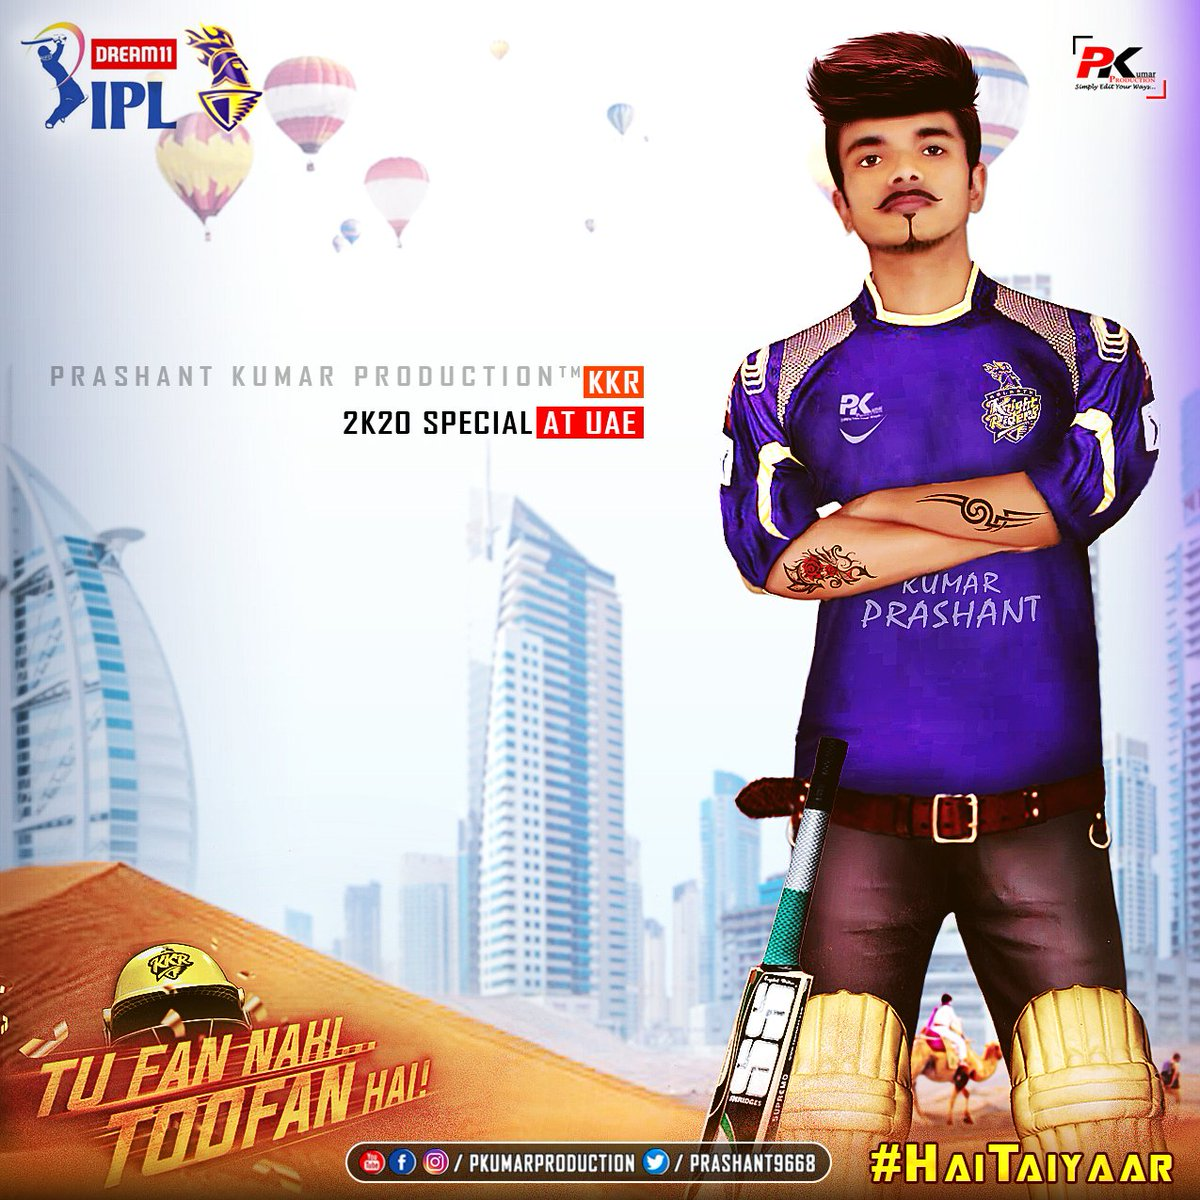 It's #PKUMARPRODUCTION™ #Toofani🌪️ #DP📸 #Edition..  ..Ami #KKR⚔️ #HaiTaiyaar | #Dream11IPL🏆 #2K20 At #UAE | #KorboLorboJeetbo Re🔥💪💪... https://t.co/Wjkt4fdots